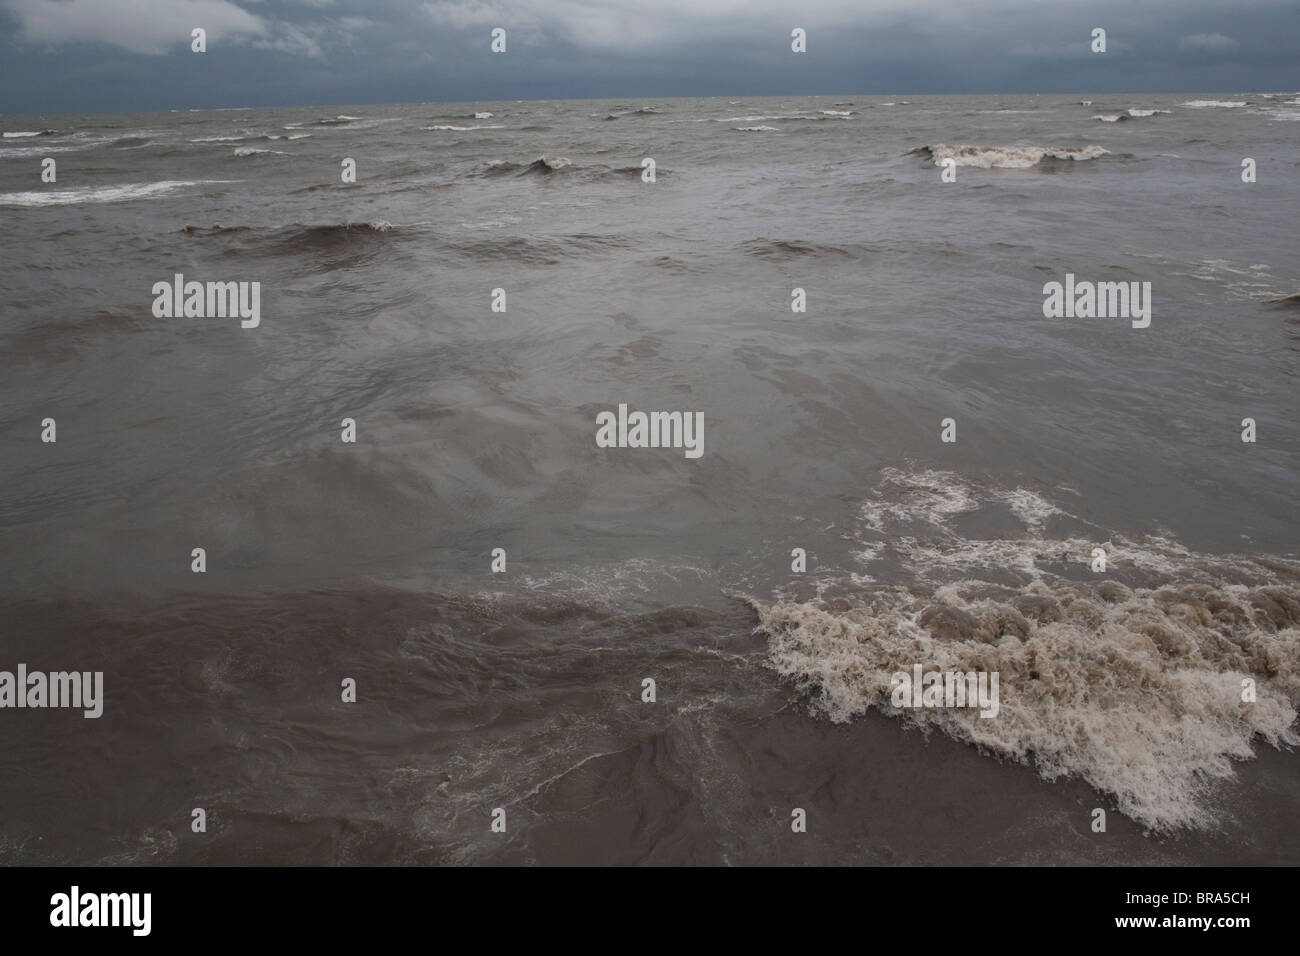 An oil slick from the Deepwater Horizon BP oil spill coats the waves in Grand Isle, Louisiana. - Stock Image